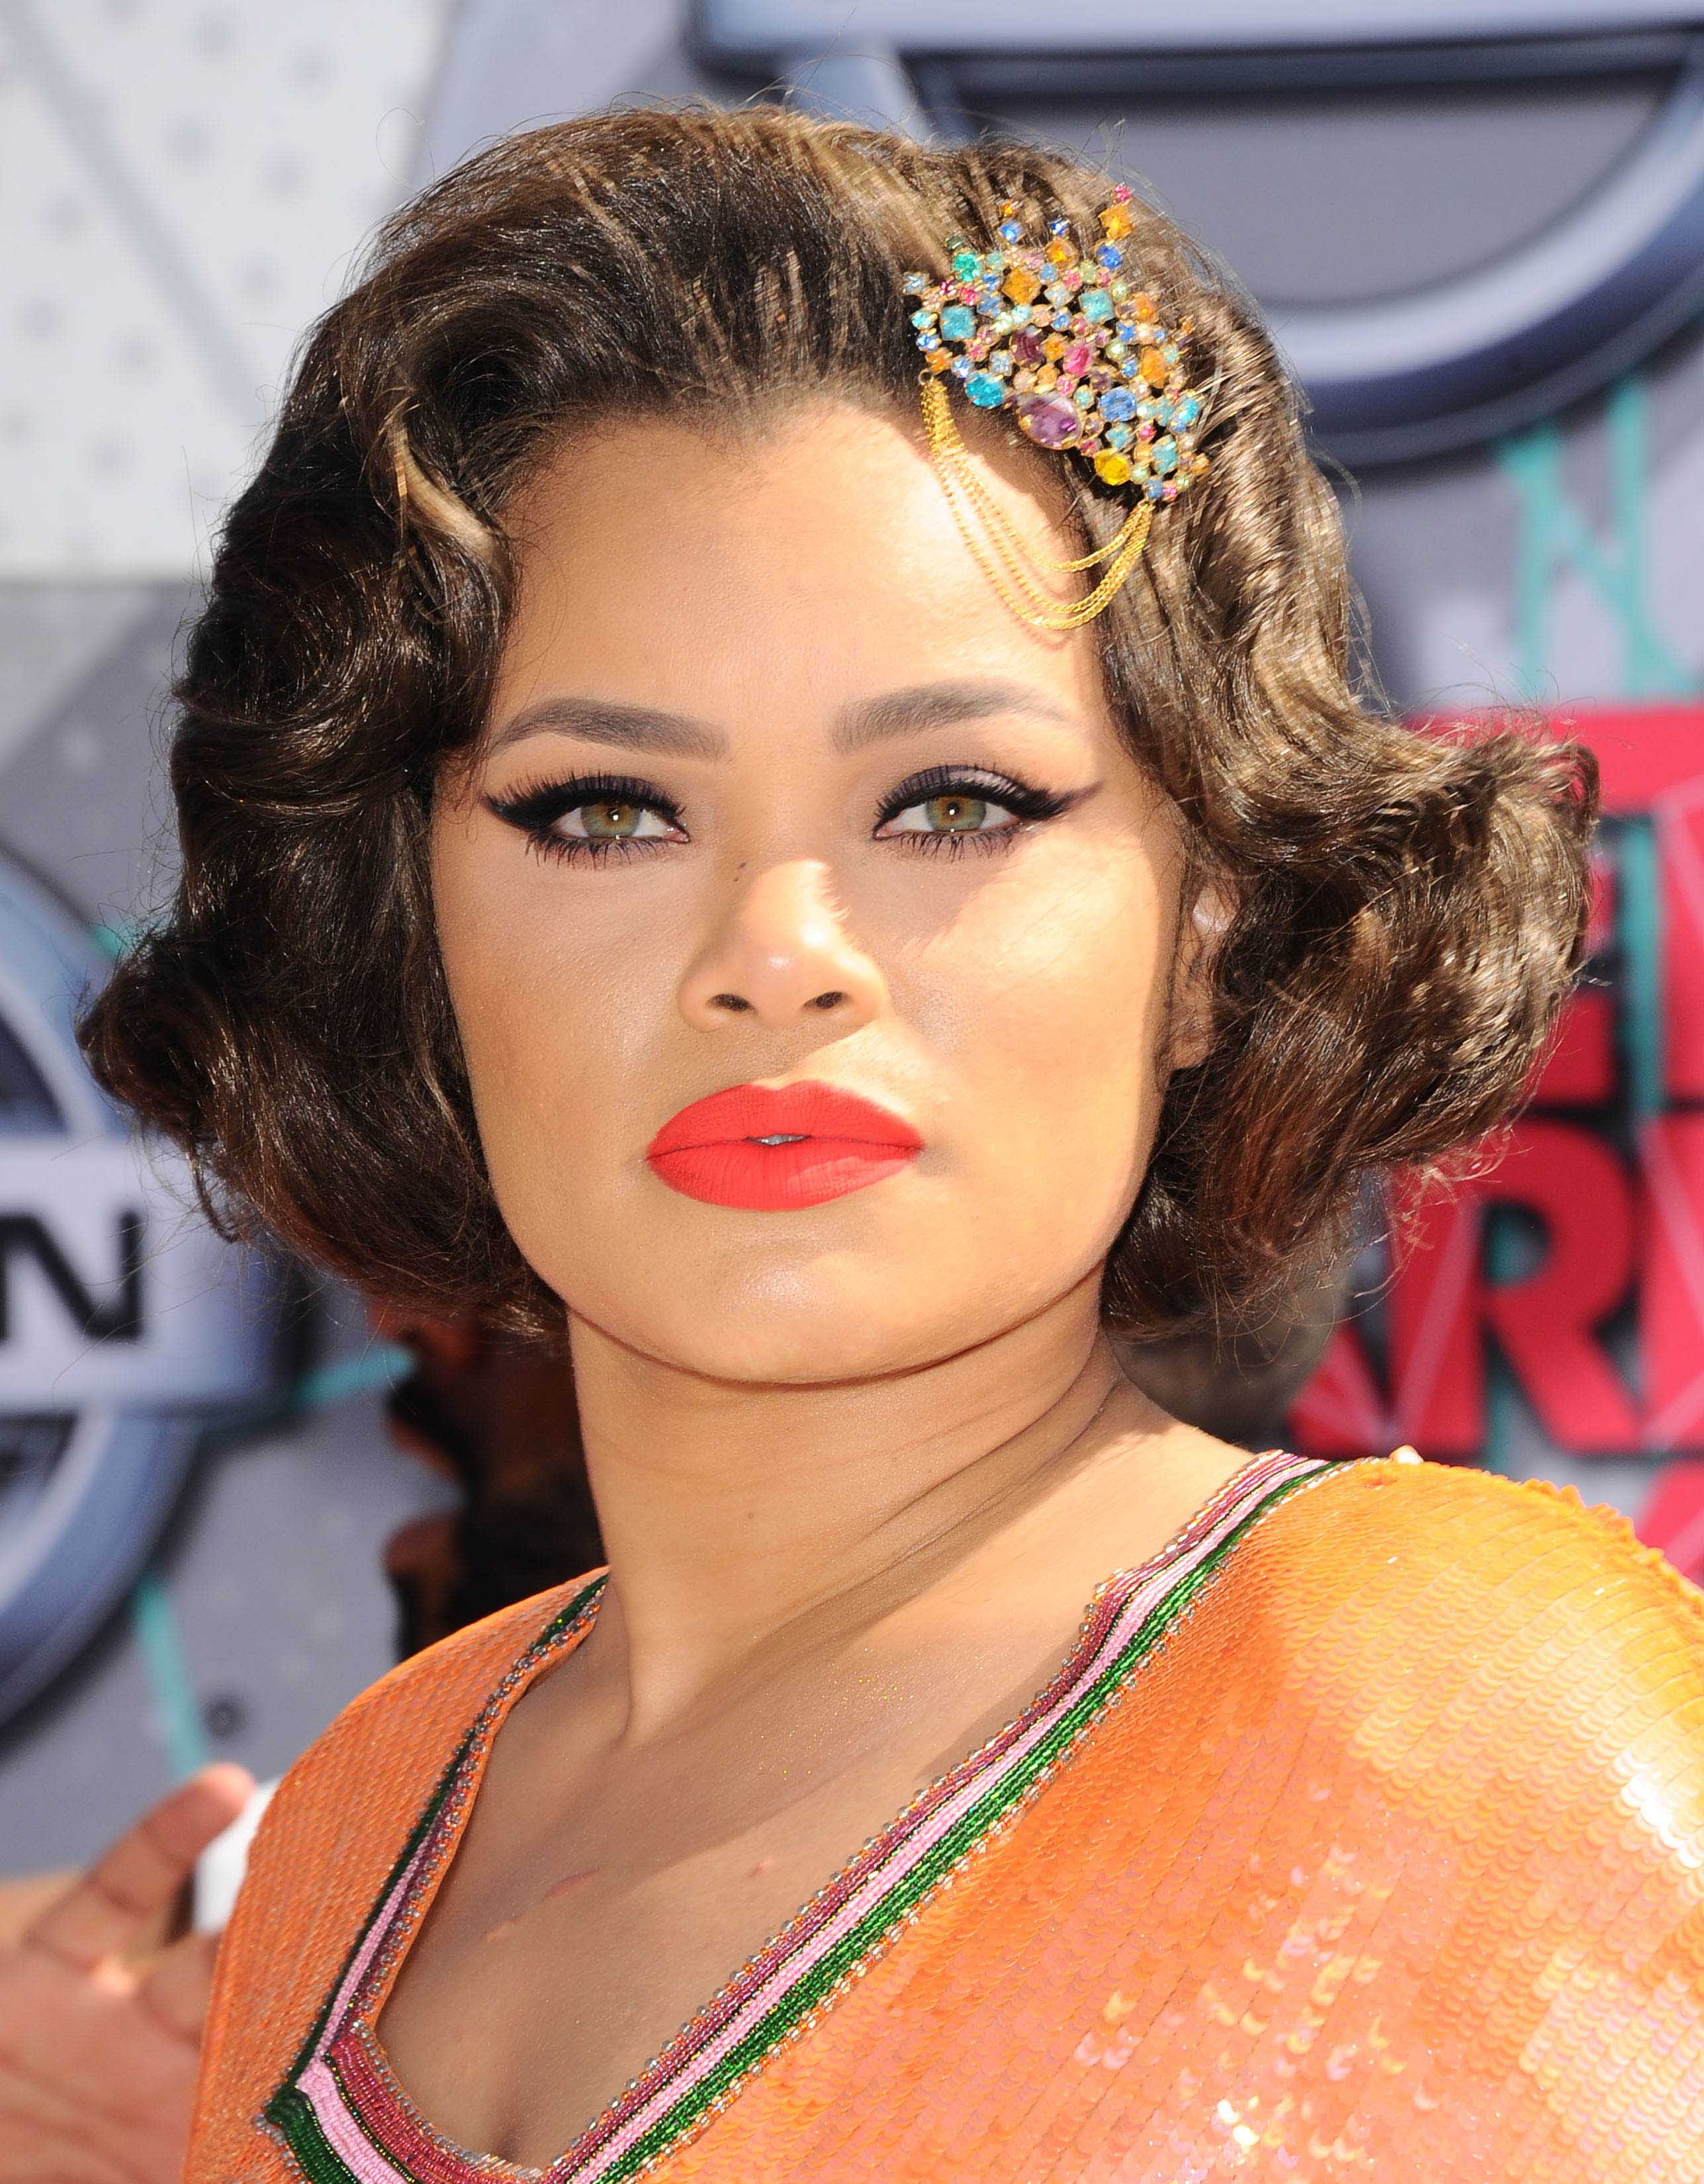 hair accessories 2016: All Things Hair - IMAGE - celebrity hairstyles Andra Day wavy bob